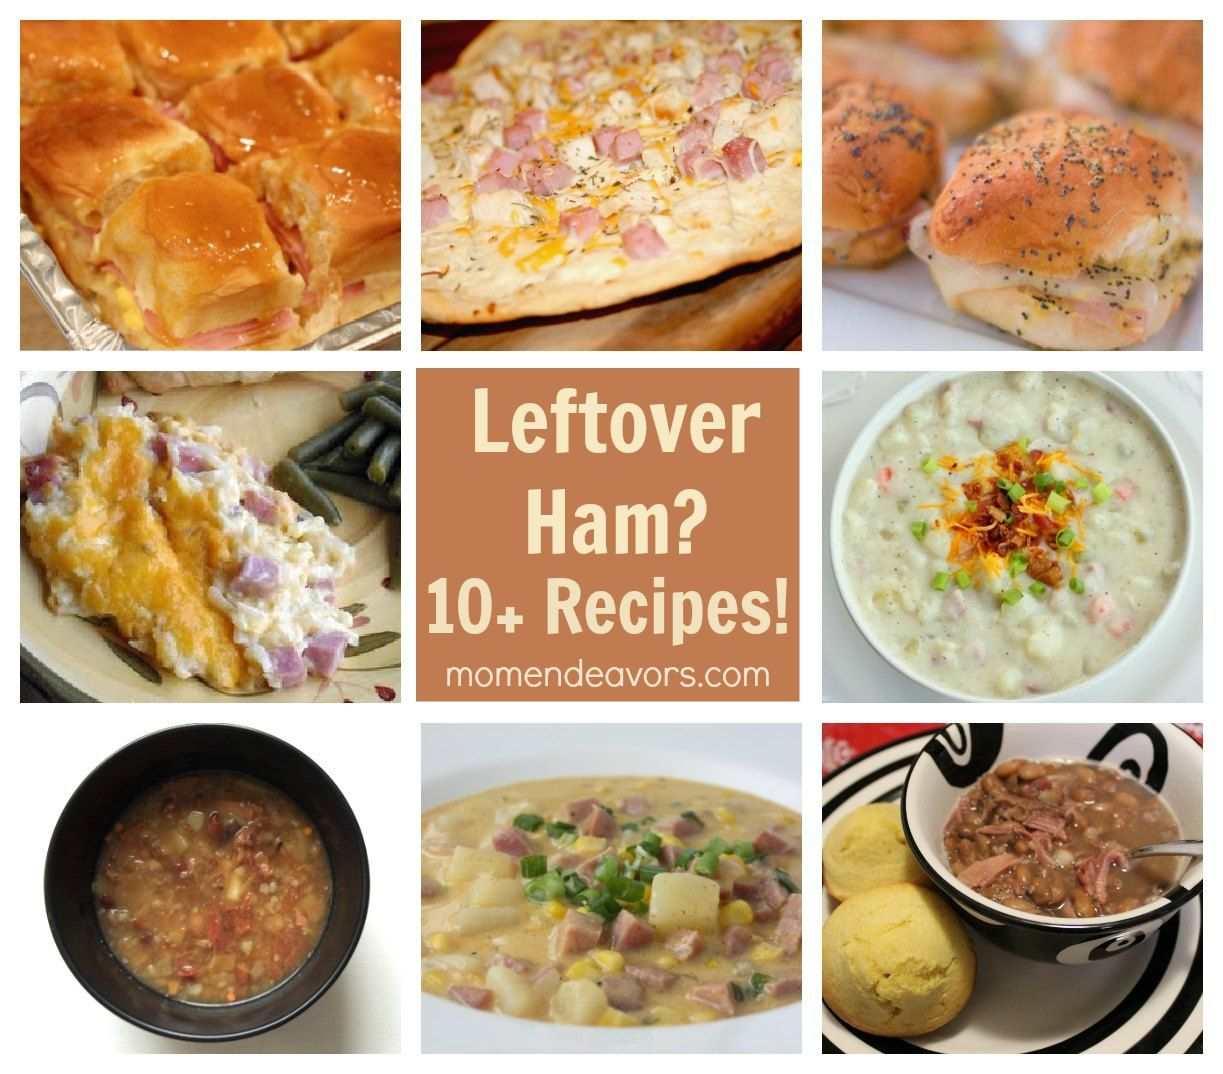 What to do with the leftover christmas ham 10 recipe ideas using 10 great recipe ideas for the leftover christmas ham christmas recipes forumfinder Gallery